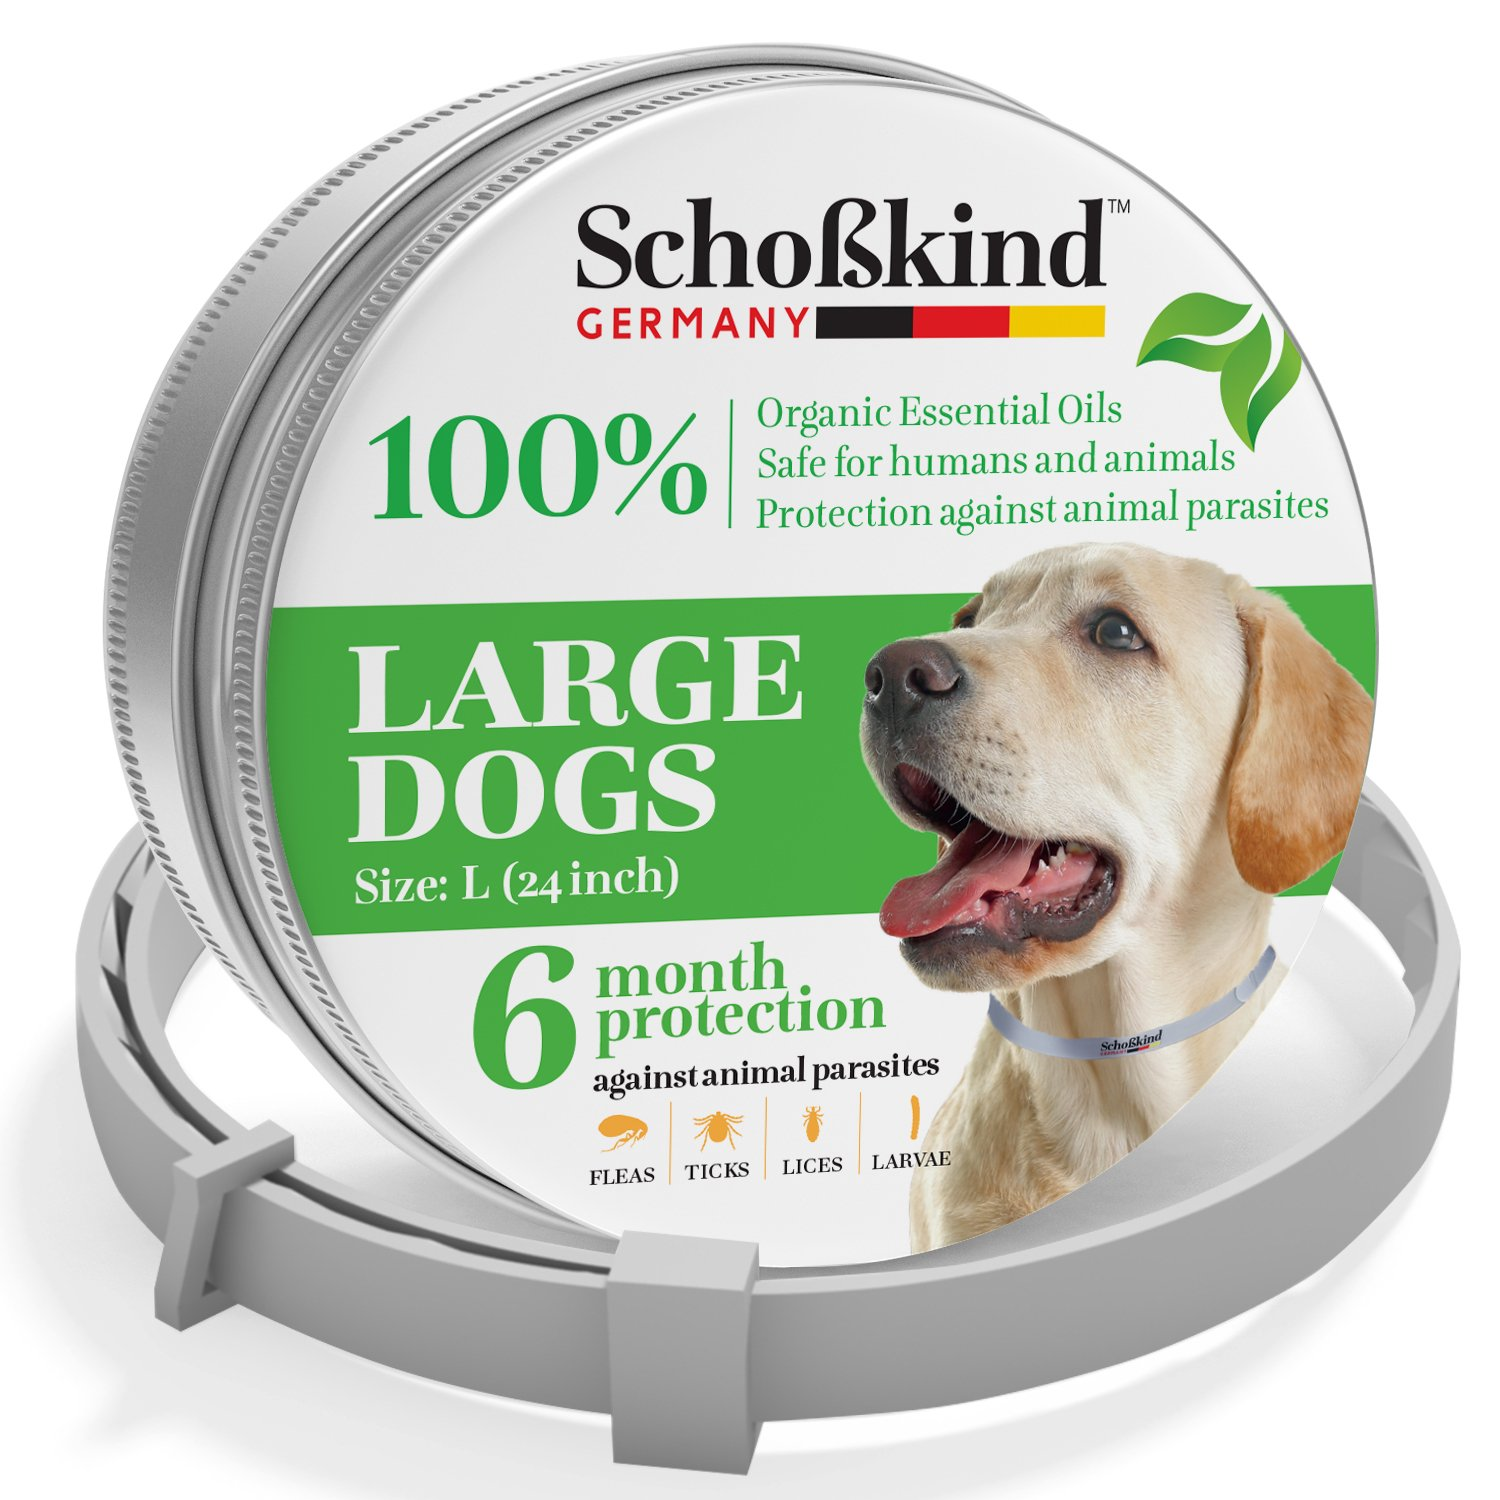 Organic Way Flea and Tick Collar for Dogs - Made for Germany - 100% Safe & Eco-Friendly - Based on Natural Oils - Flea and Tick Prevention Pets - 6-Month Protection - Waterproof Dog Flea Collar (2B)